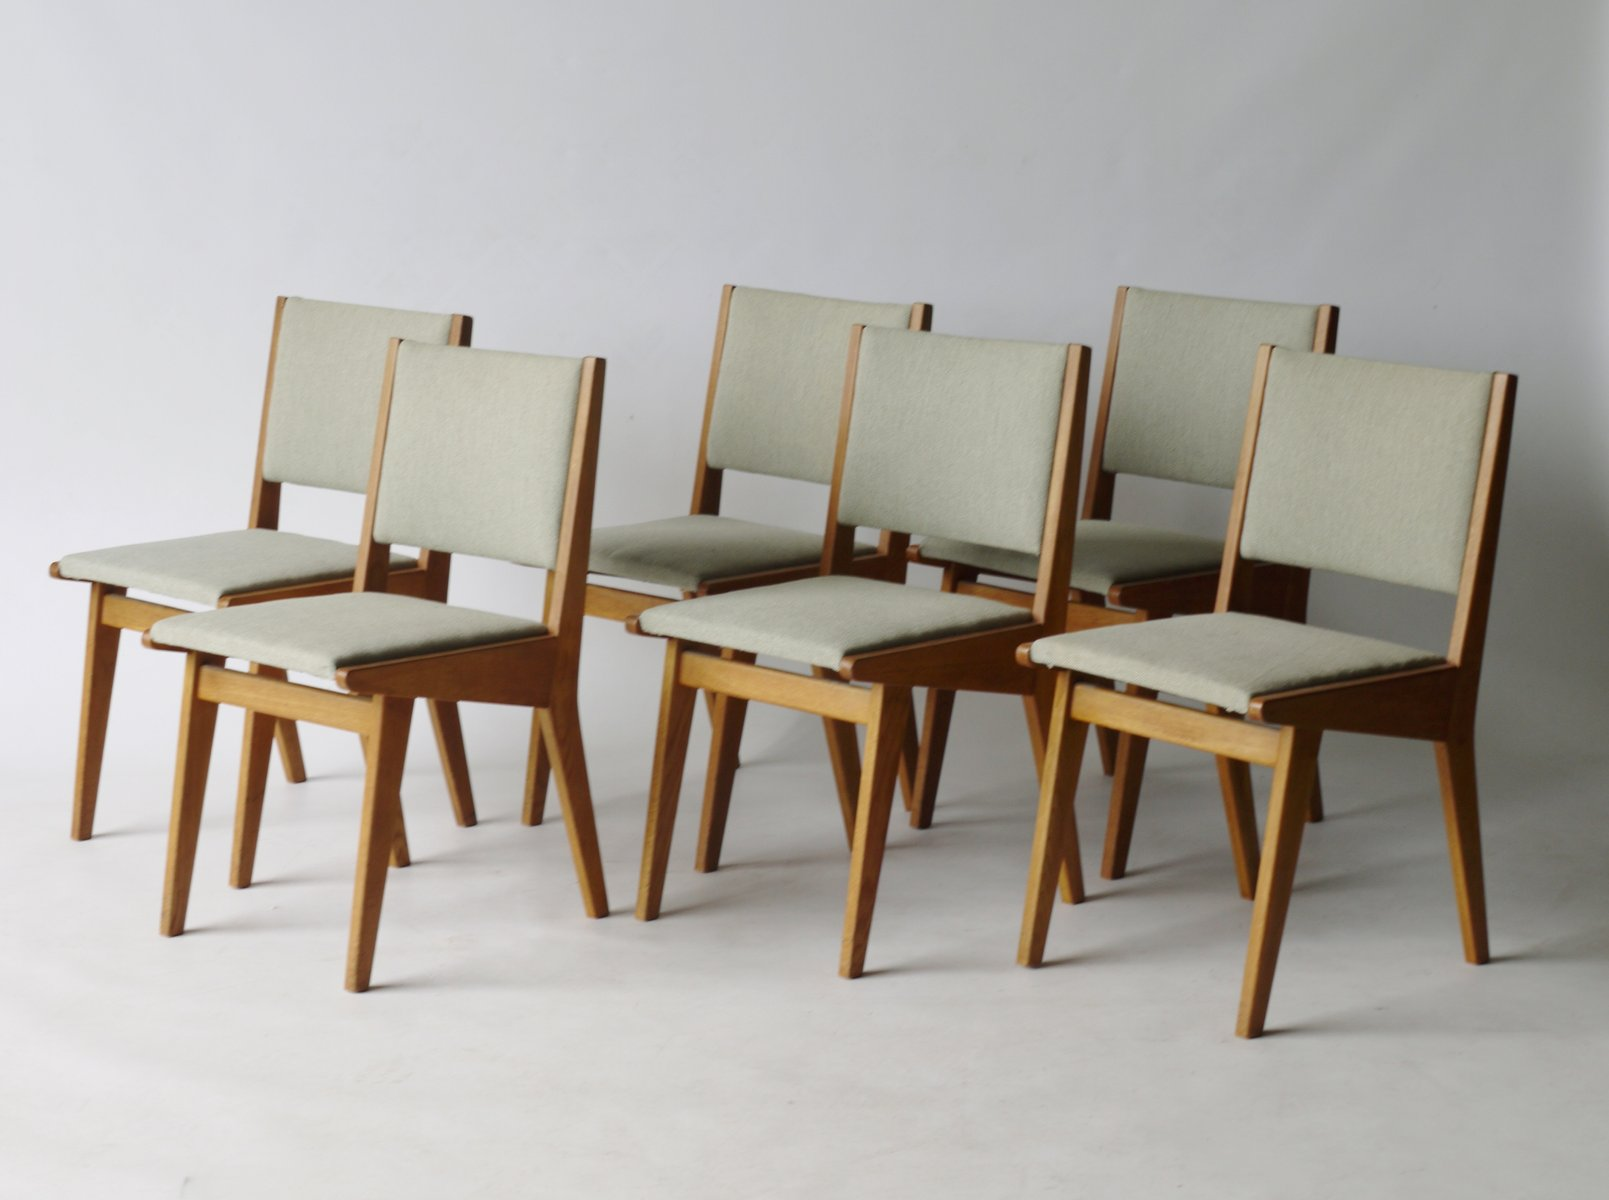 American 666 USP Dining Chairs By Jens Risom For Knoll, 1950s, Set Of 6